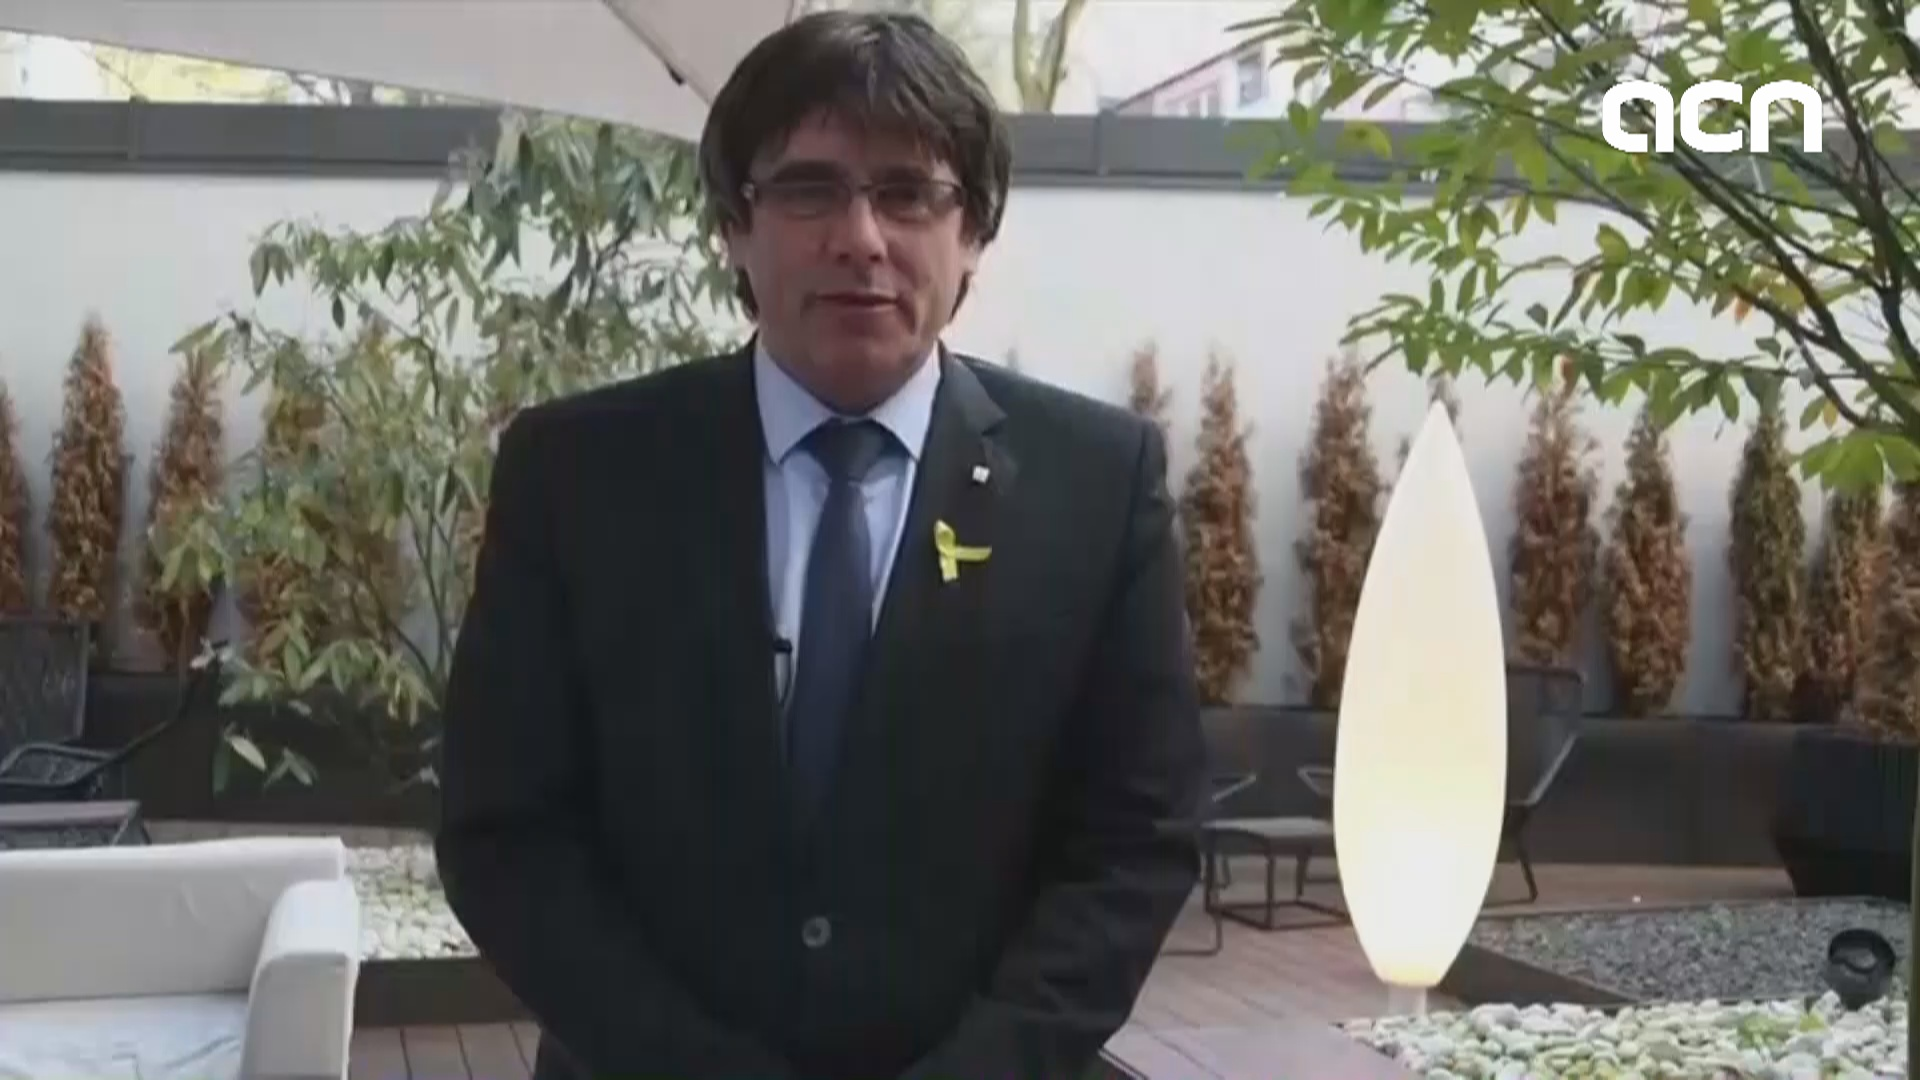 Politicians give their opinion on Sant Jordi this year